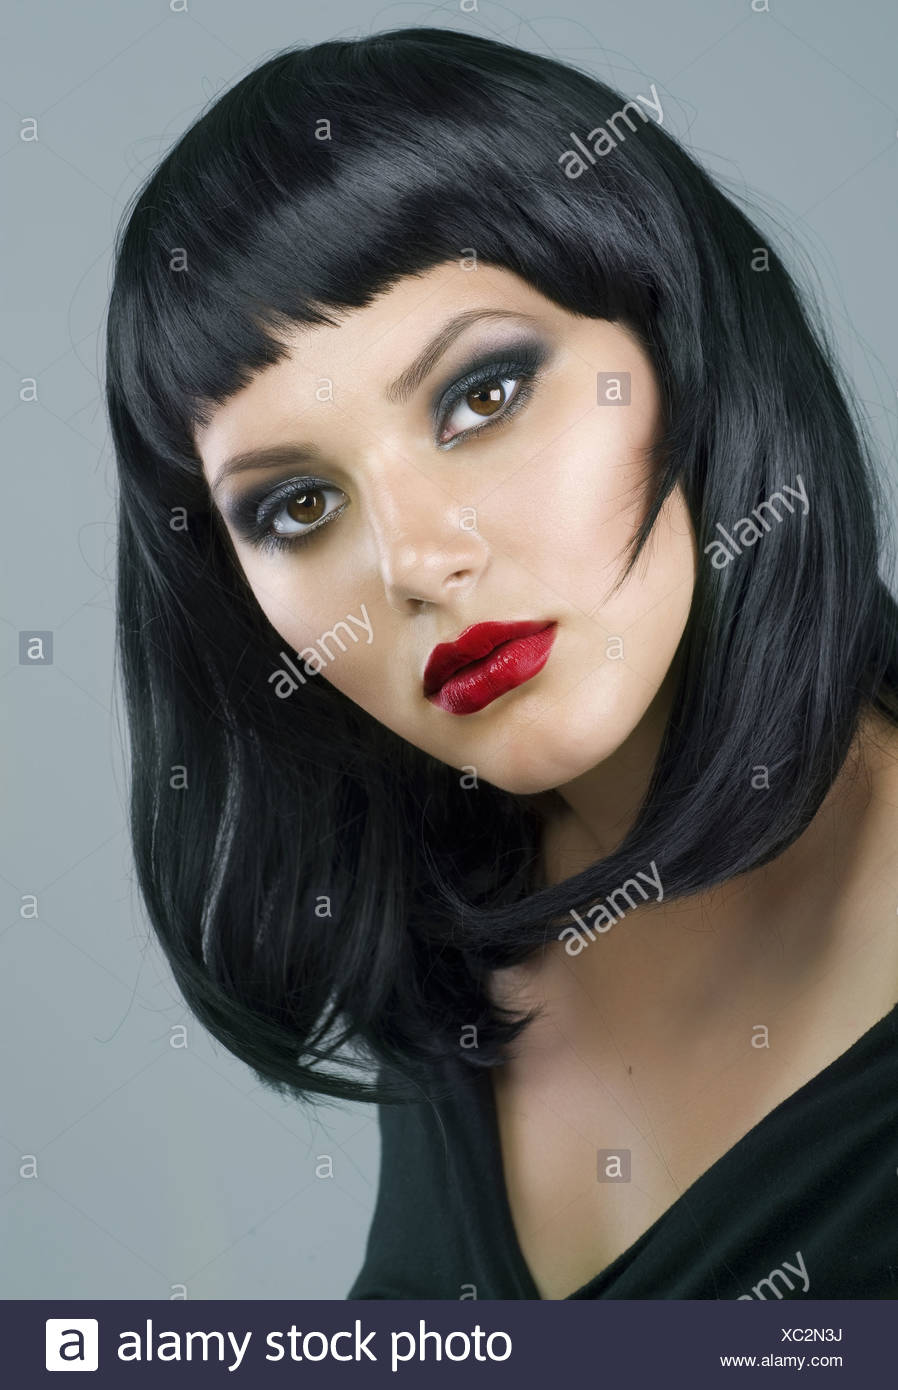 Brunette Extreme Makeuphaircut Stock Photo 282802230 Alamy